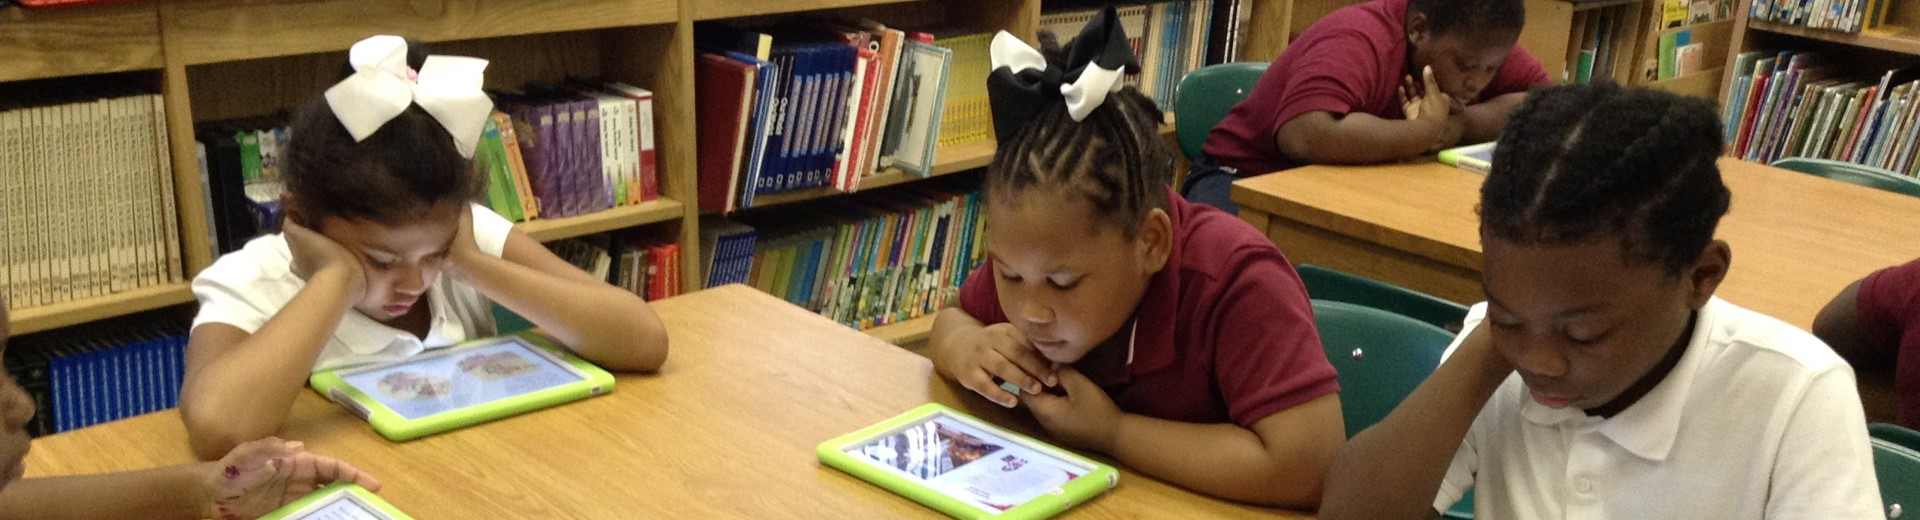 Second graders use tech tools in the library.